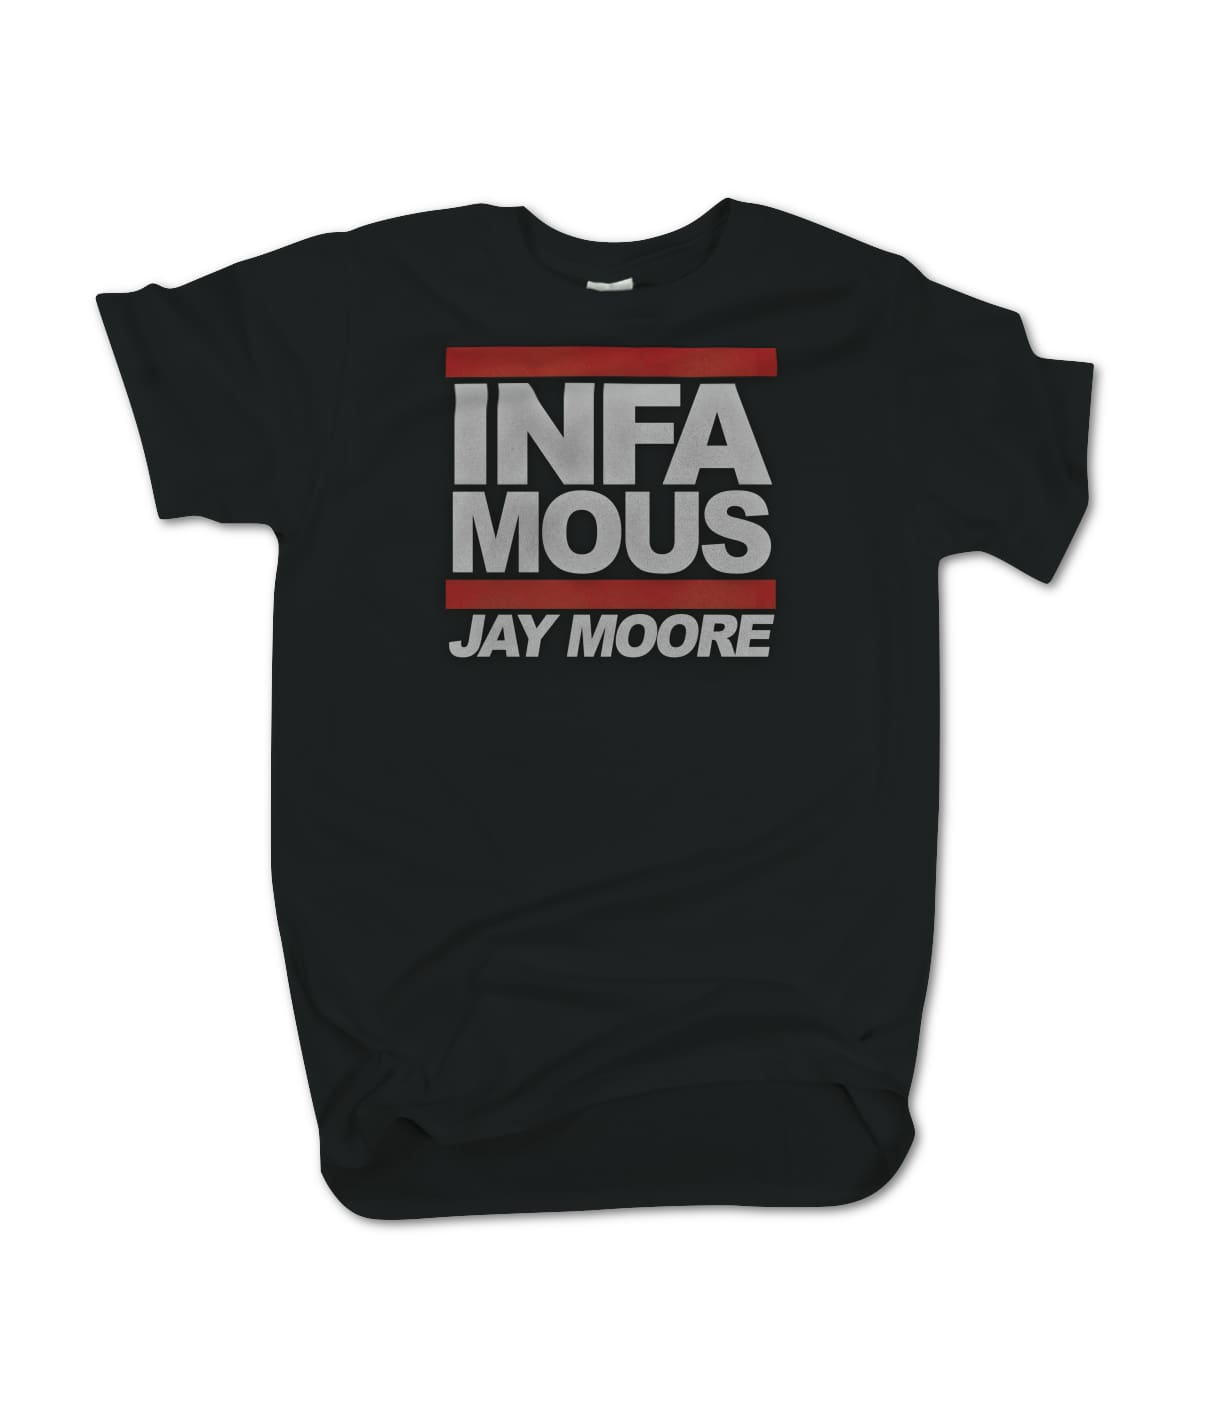 Hogtown pro wrestling infamous jay moore2 1481258962